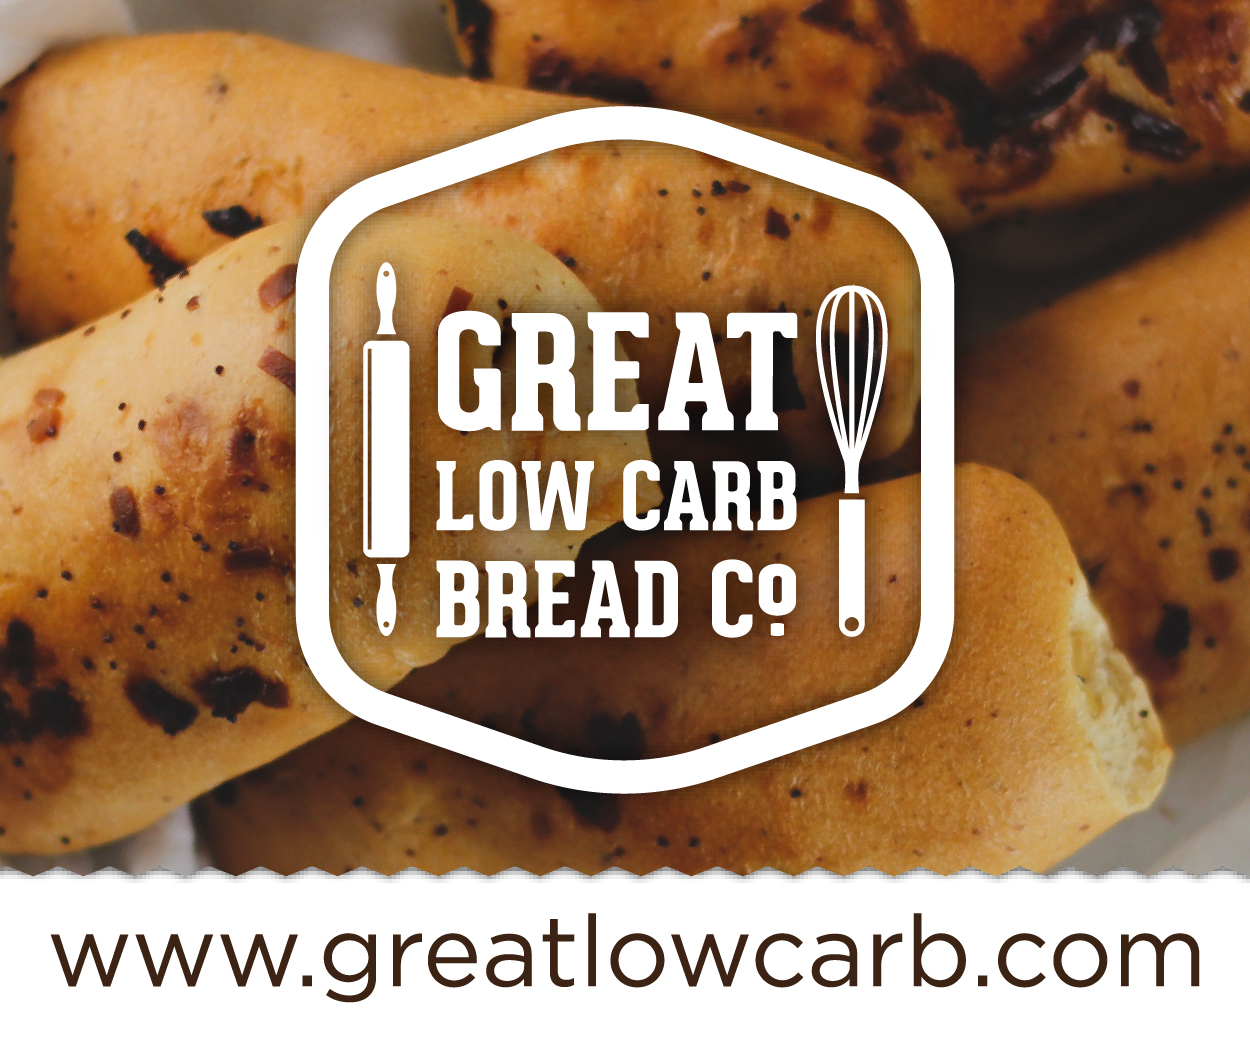 Great Low Carb Bread Company promo code